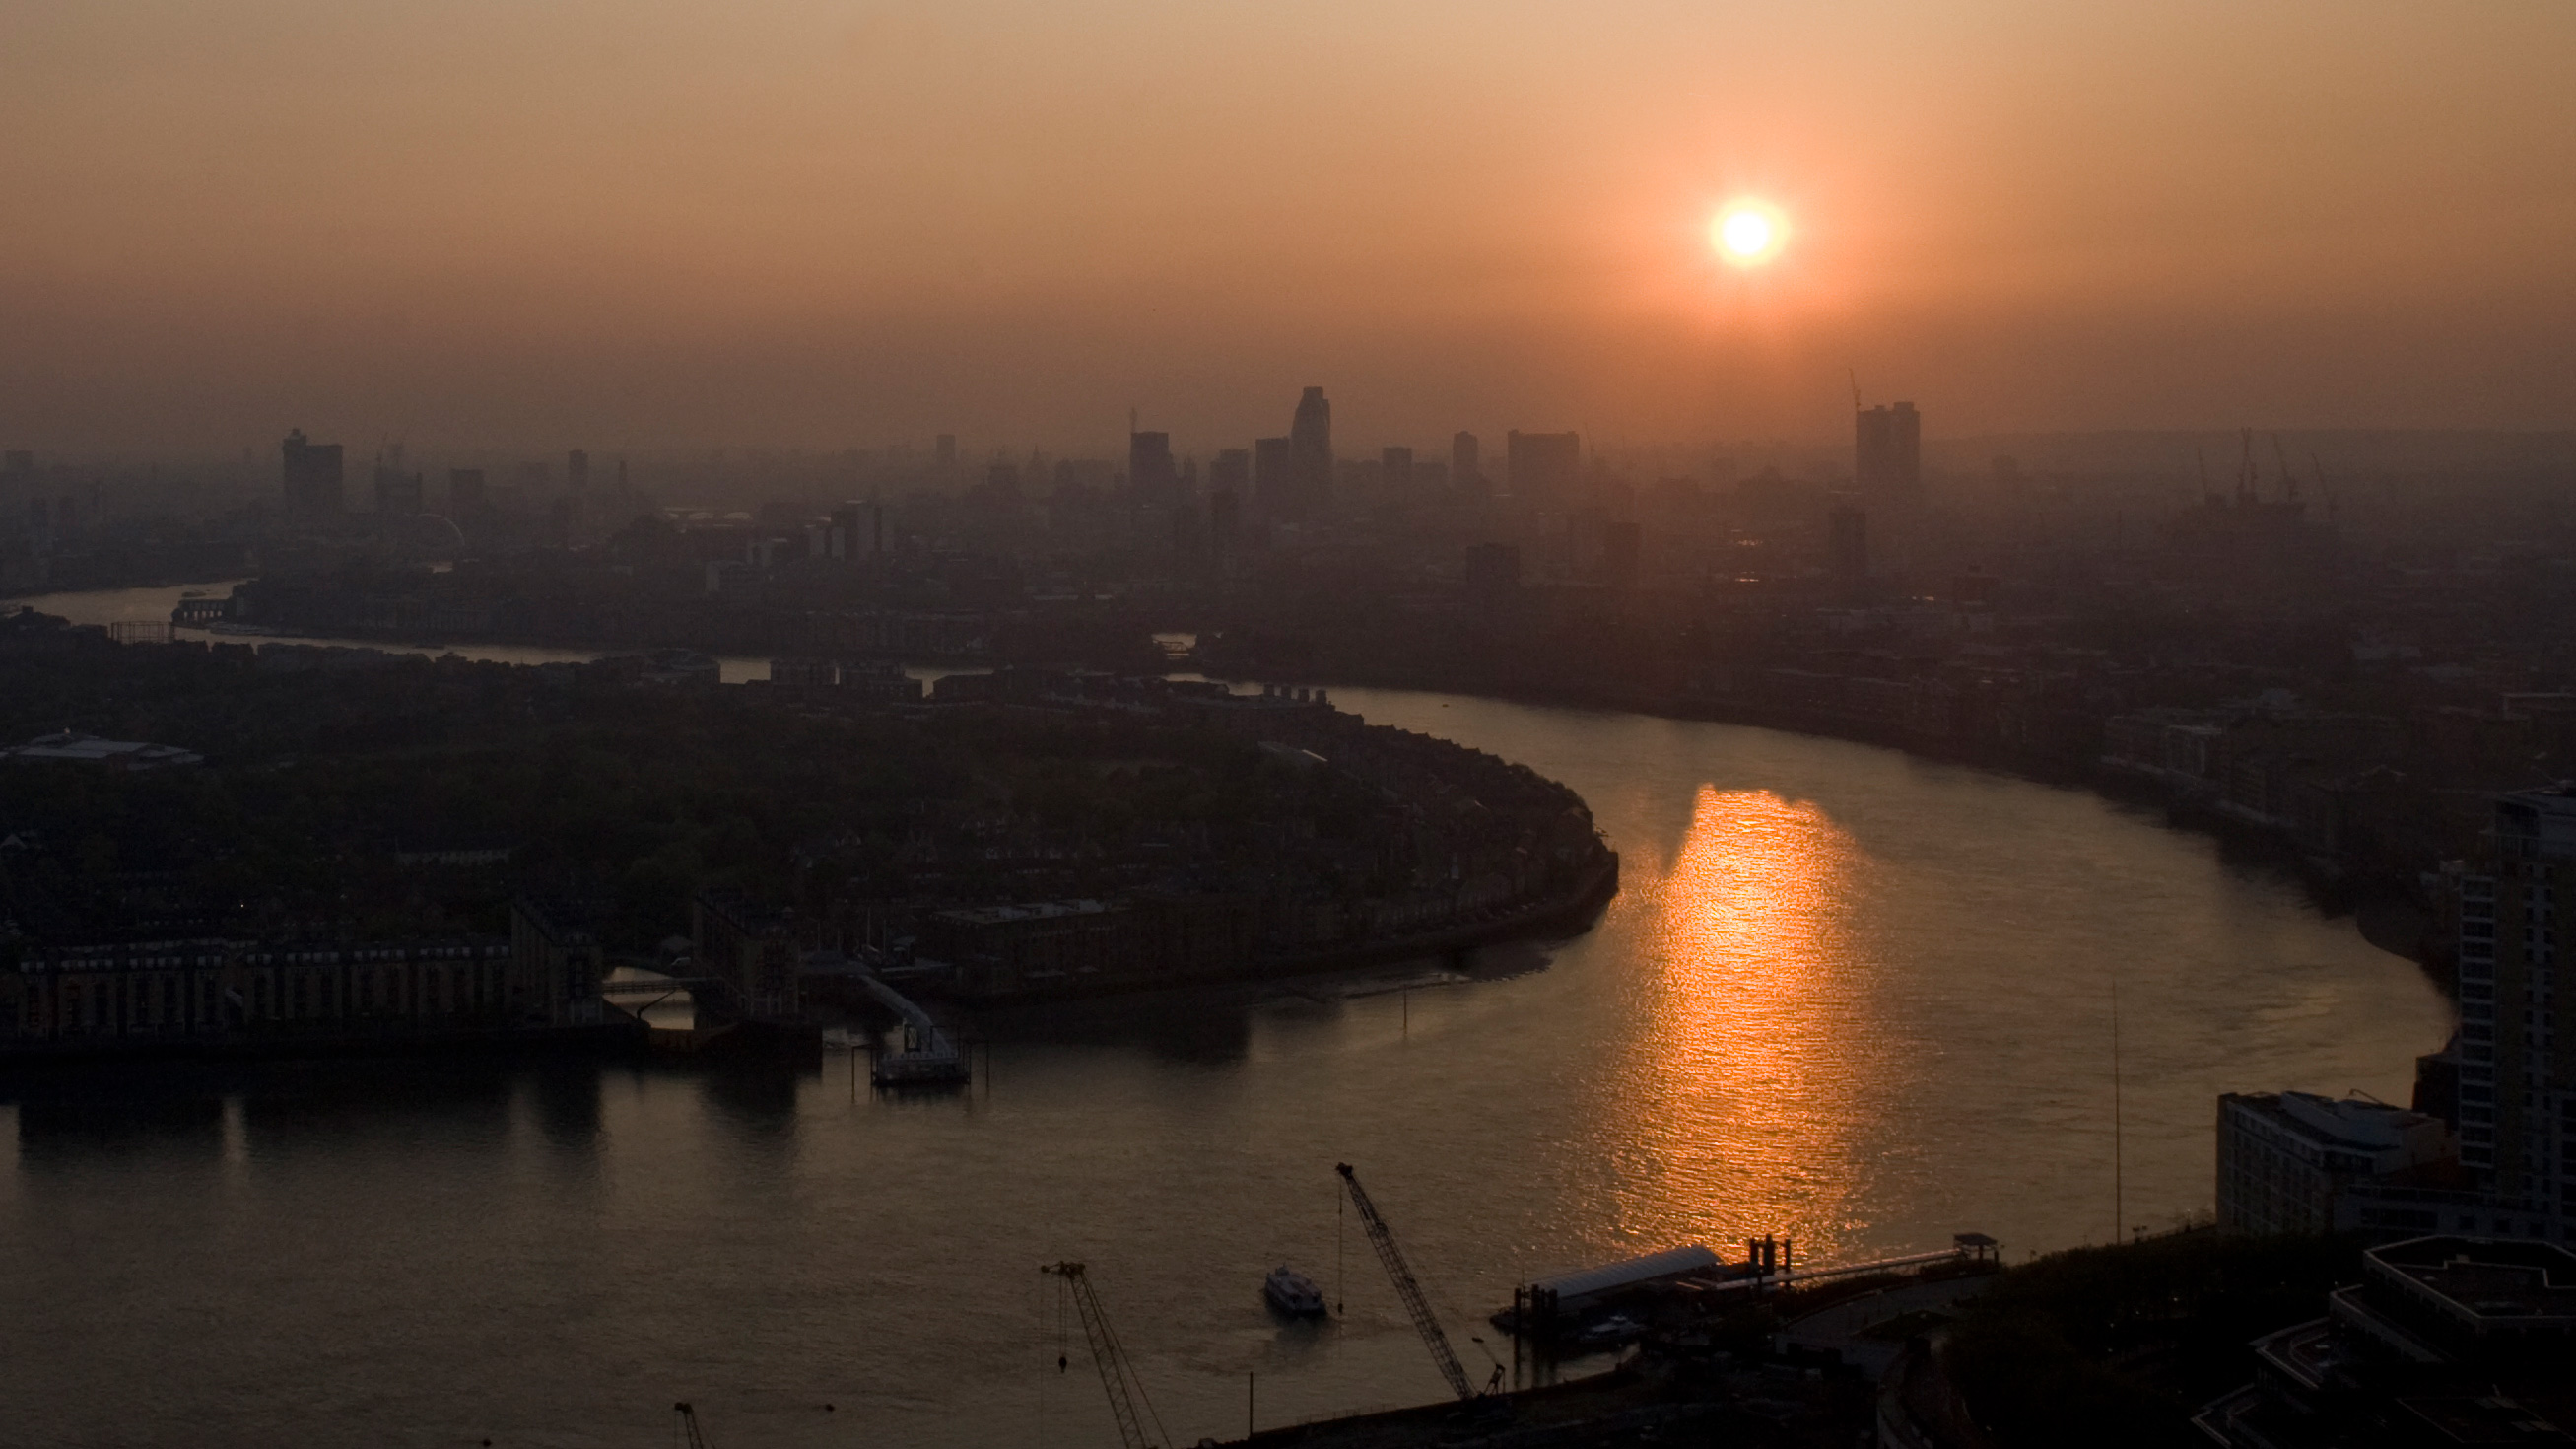 The picture shows a high angle shot of London at dusk with the sun setting over the Thames. Smog obscures buildings in the distance.